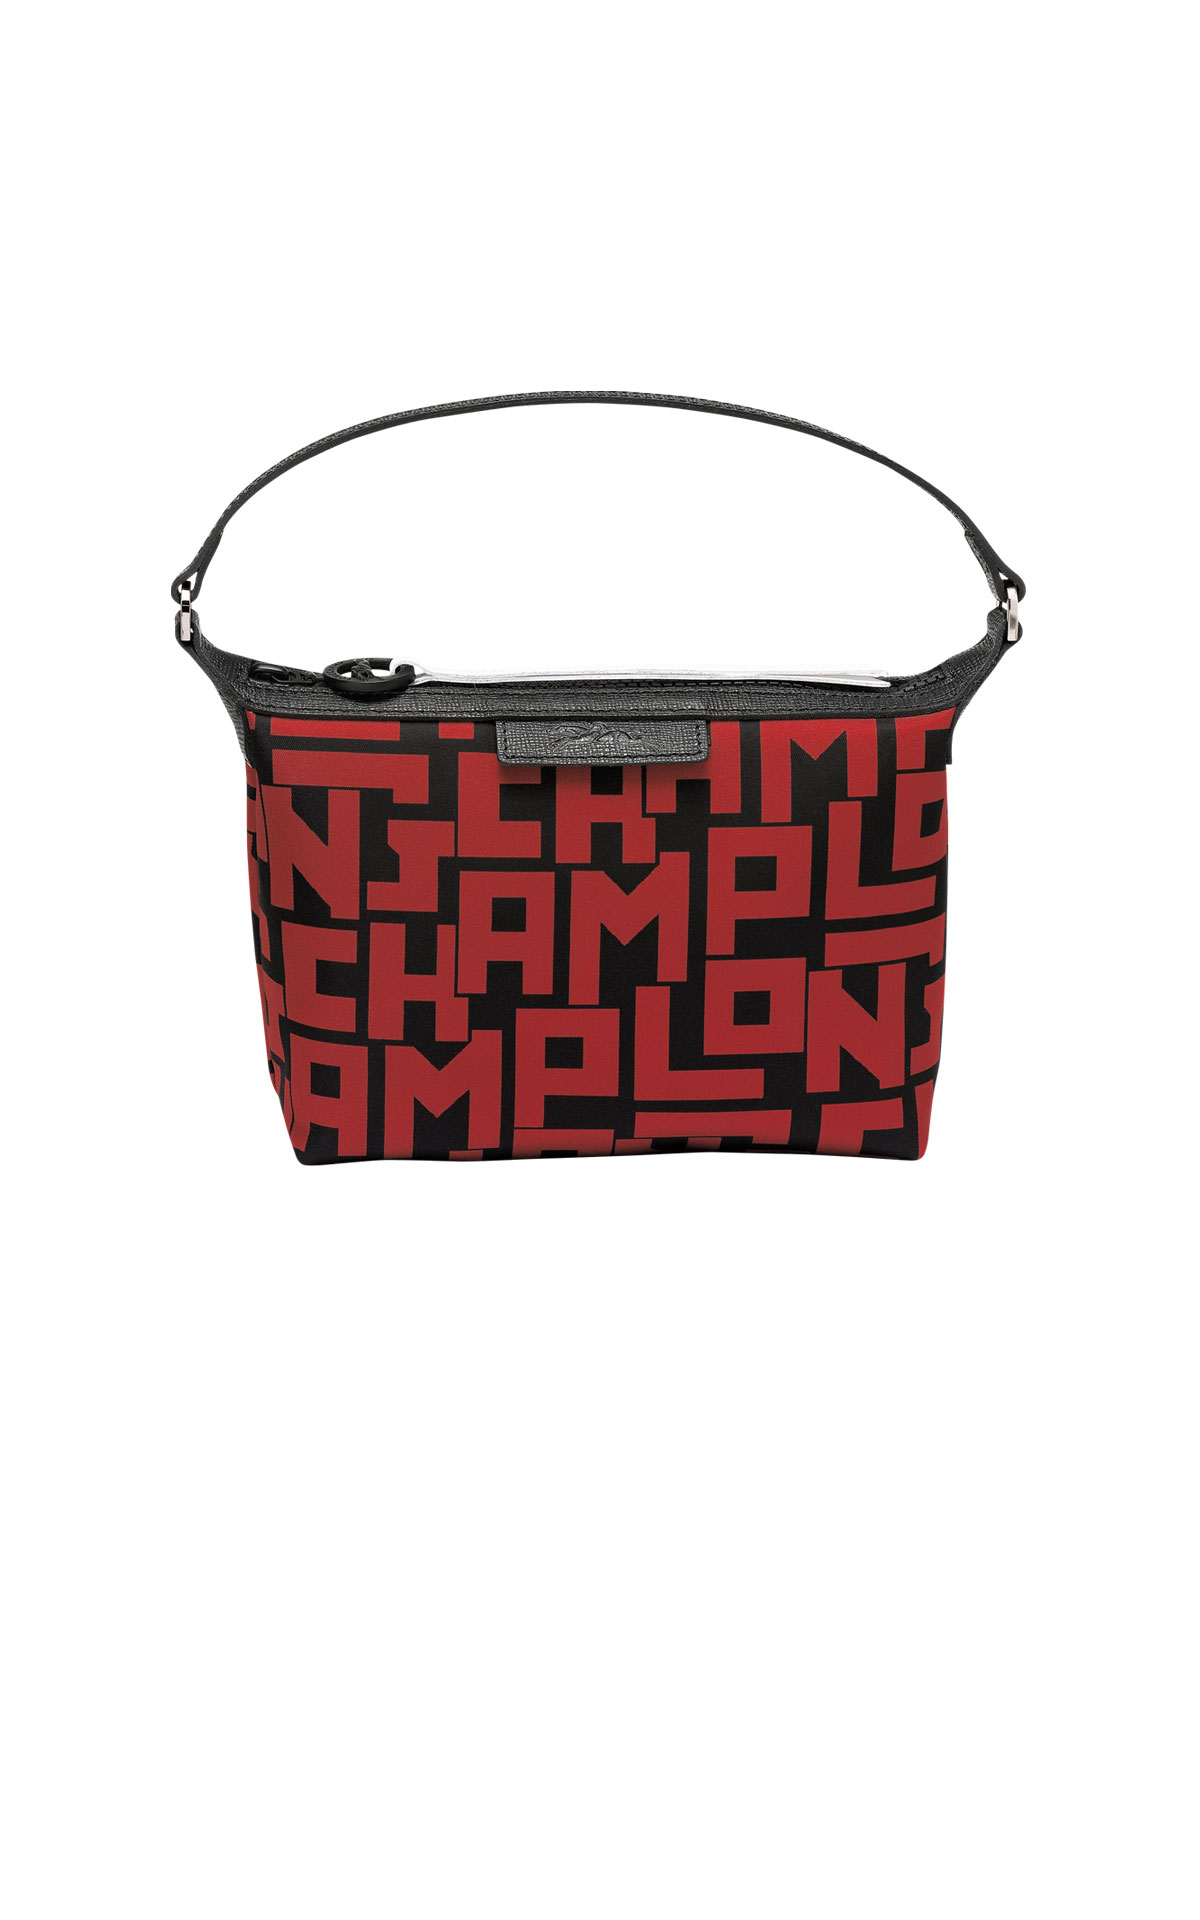 Small black bag with red letters Longchamp